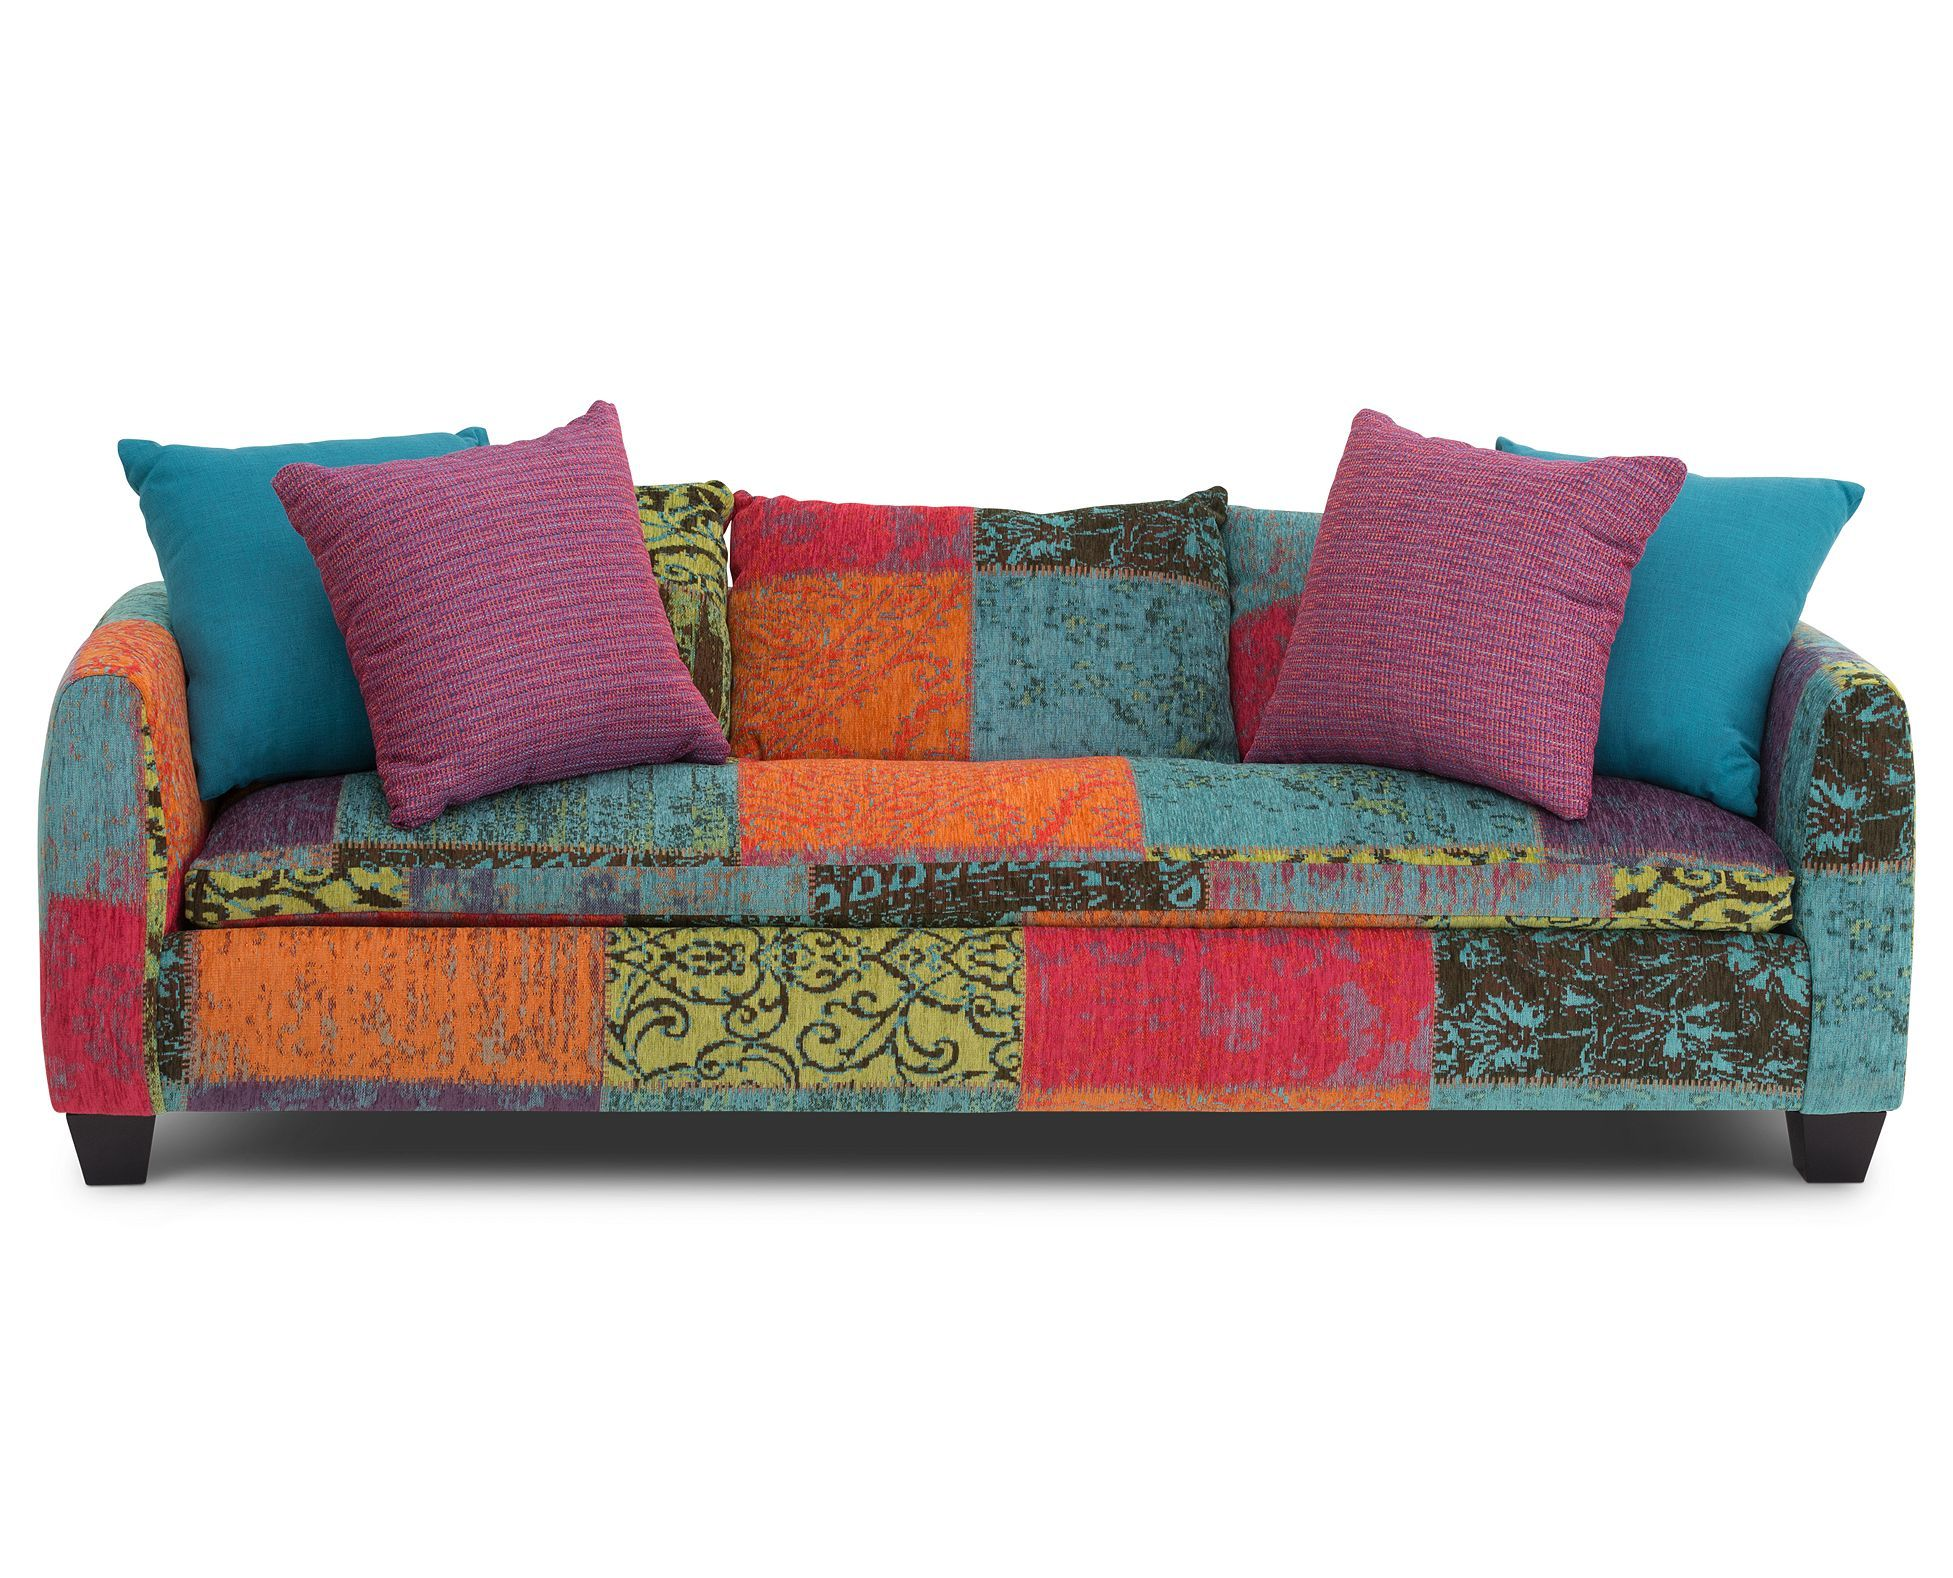 Explore Your Colorful Creative Side In Your Living Room With The